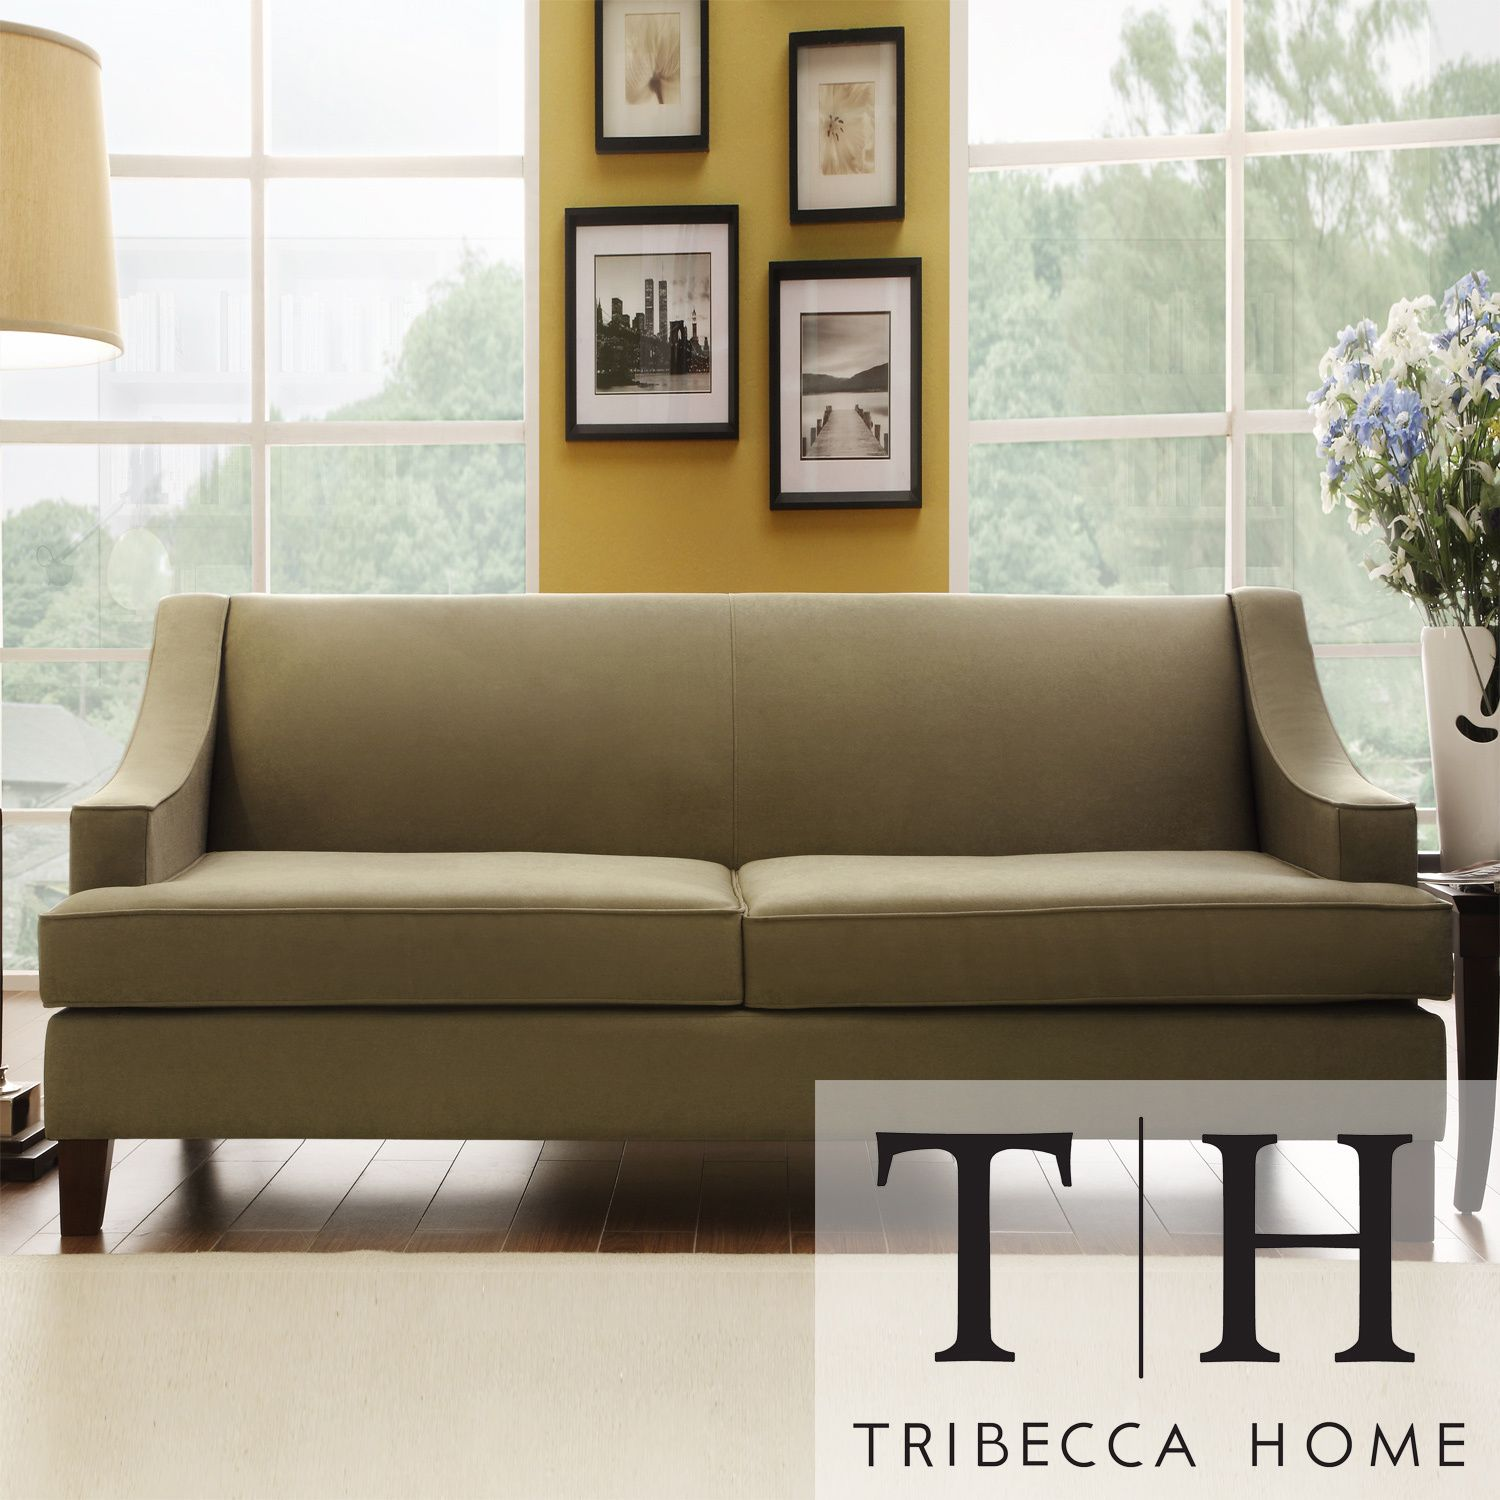 Rejuvenate your living space with this stunning microfiber sofa. The two-cushion long sofa features an elegant high back, firm cushions for added support, taupe upholstery that complements most color schemes, and wood legs with a cherry finish.